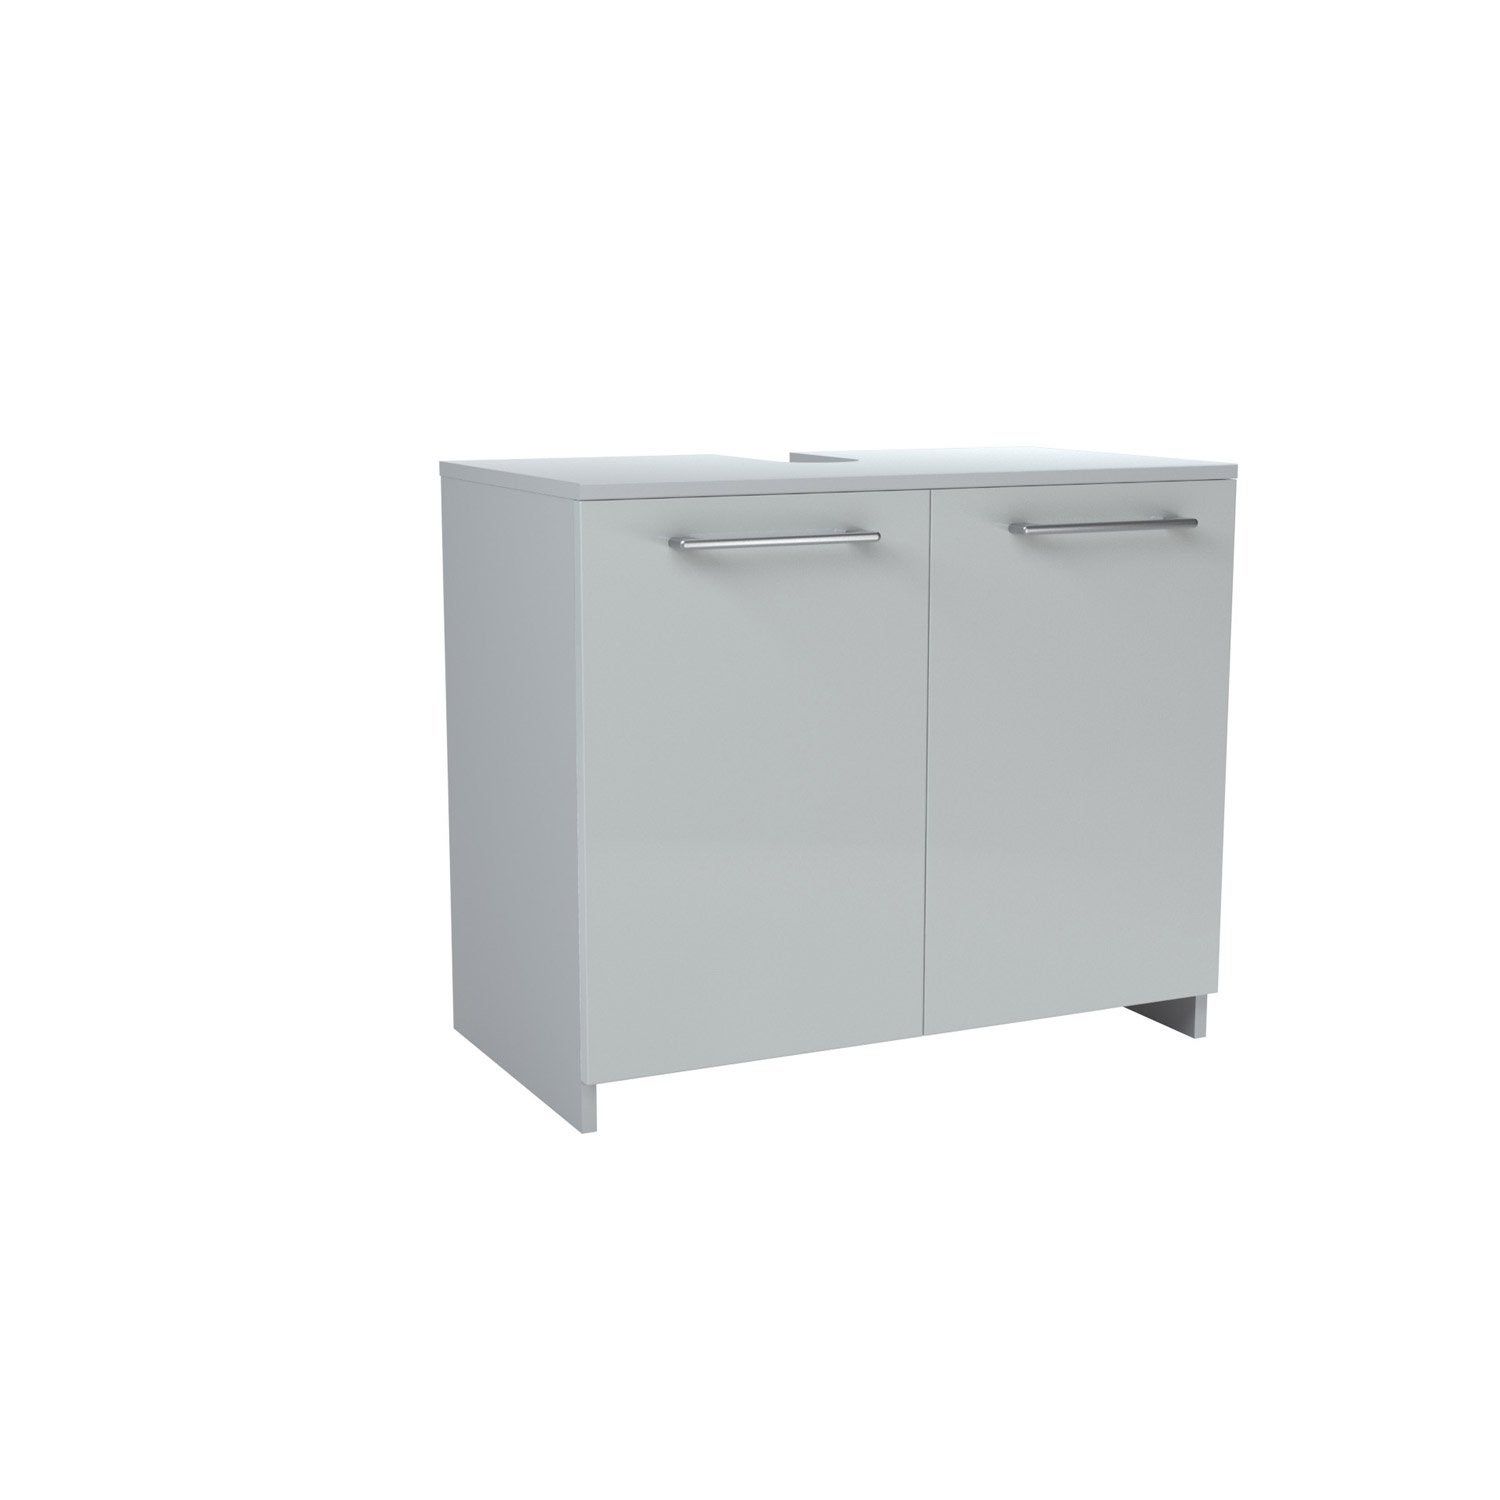 Caisson meuble sous lavabo sensea remix blanc blanc n 0 for Ensemble lavabo meuble leroy merlin